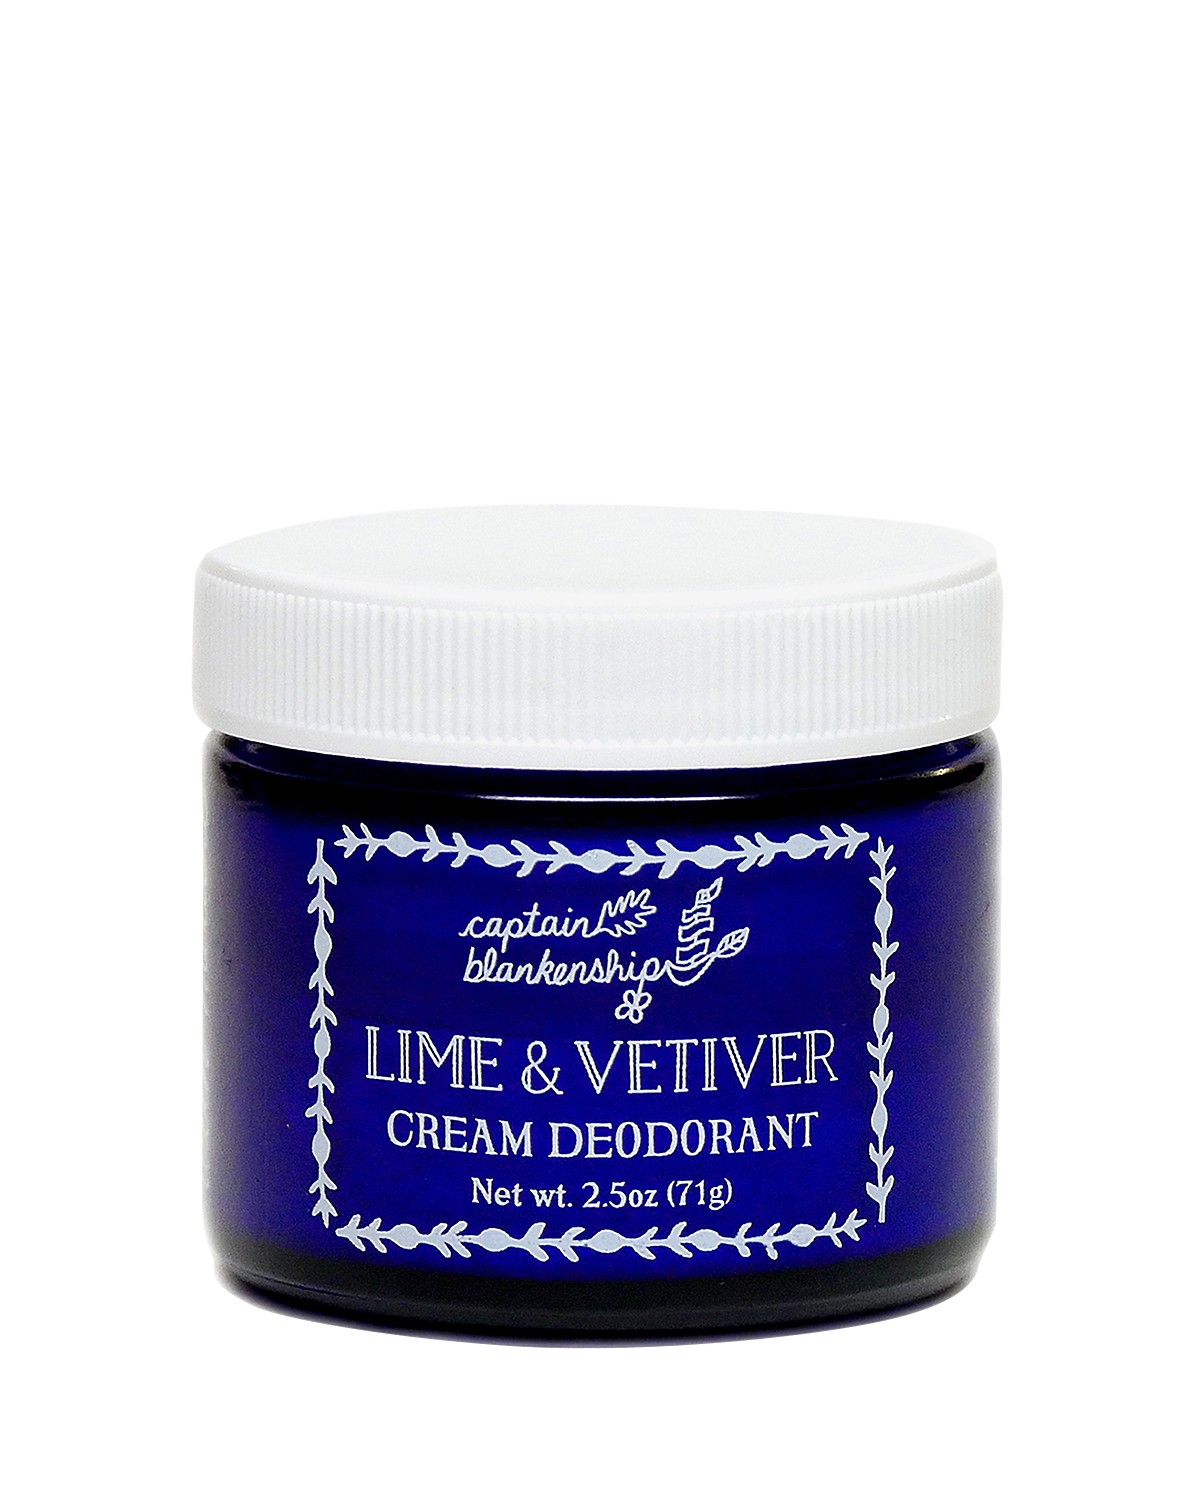 Captain Blankenship Lime & Vetiver Cream Deodorant | Bloomingdale's